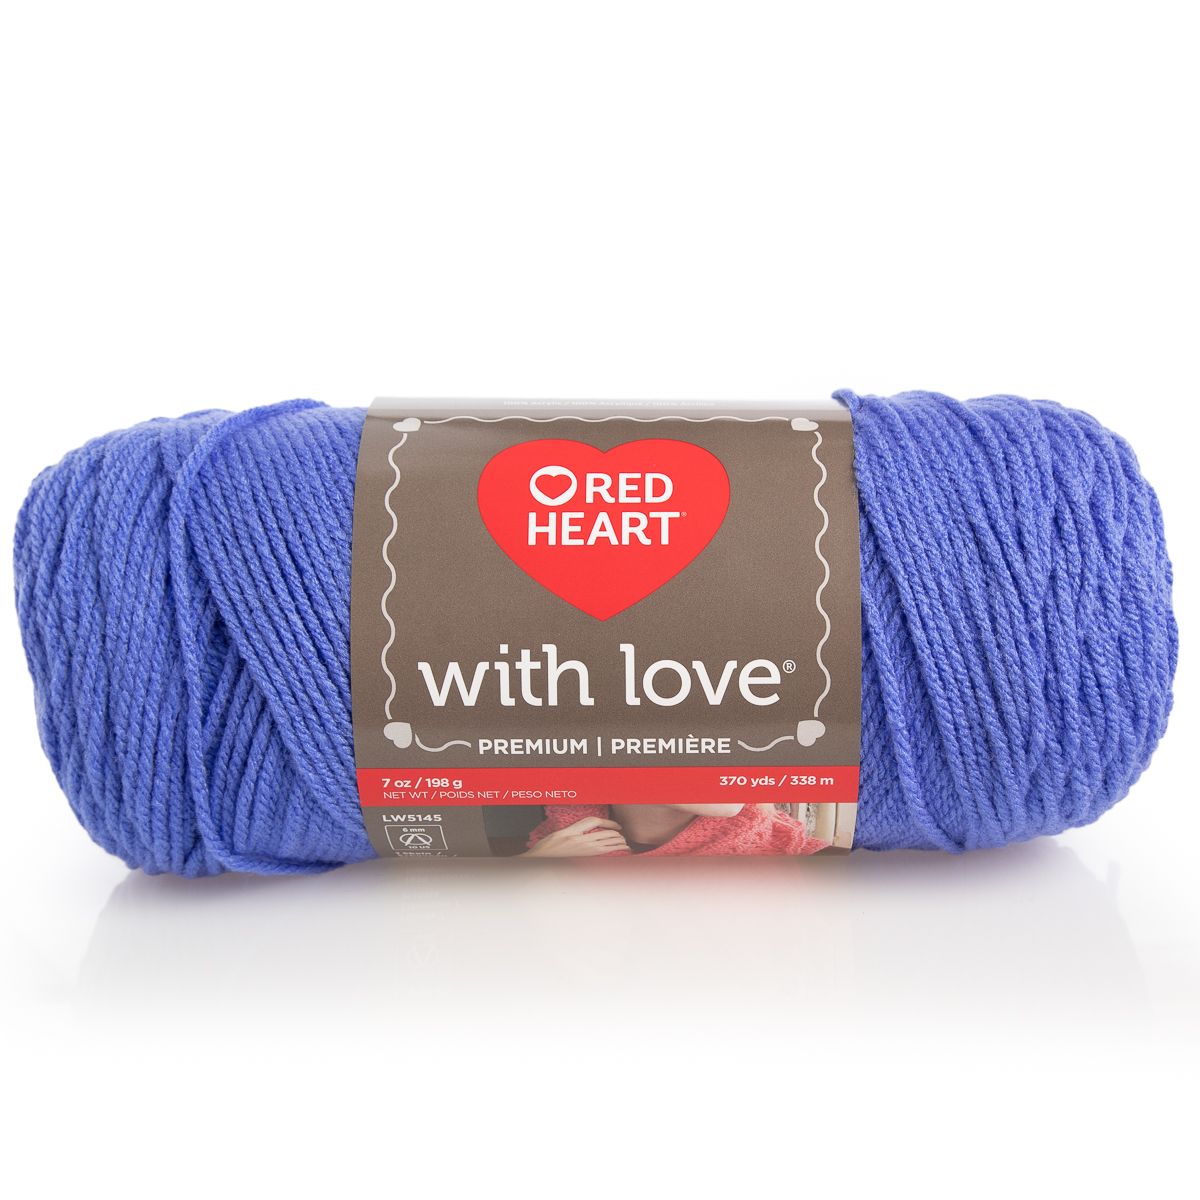 Lot of 3 skeins of Yarn Red Heart with Love Parade 4.5oz